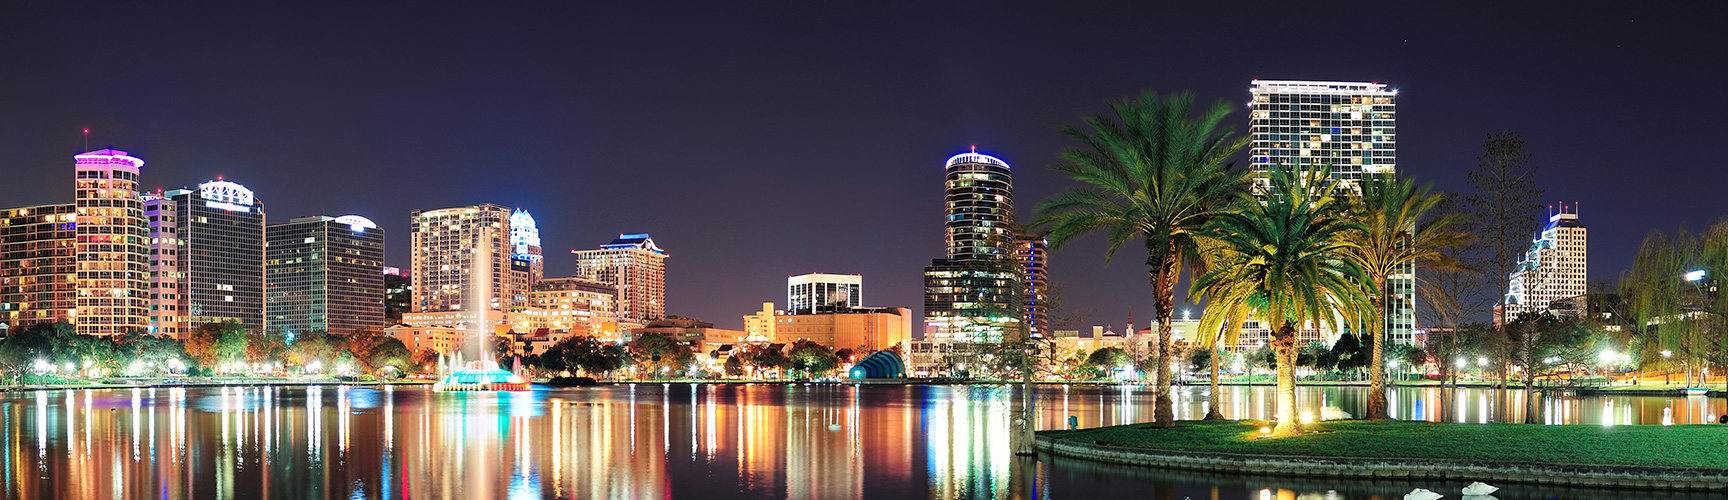 View of the Orlando skyline at night